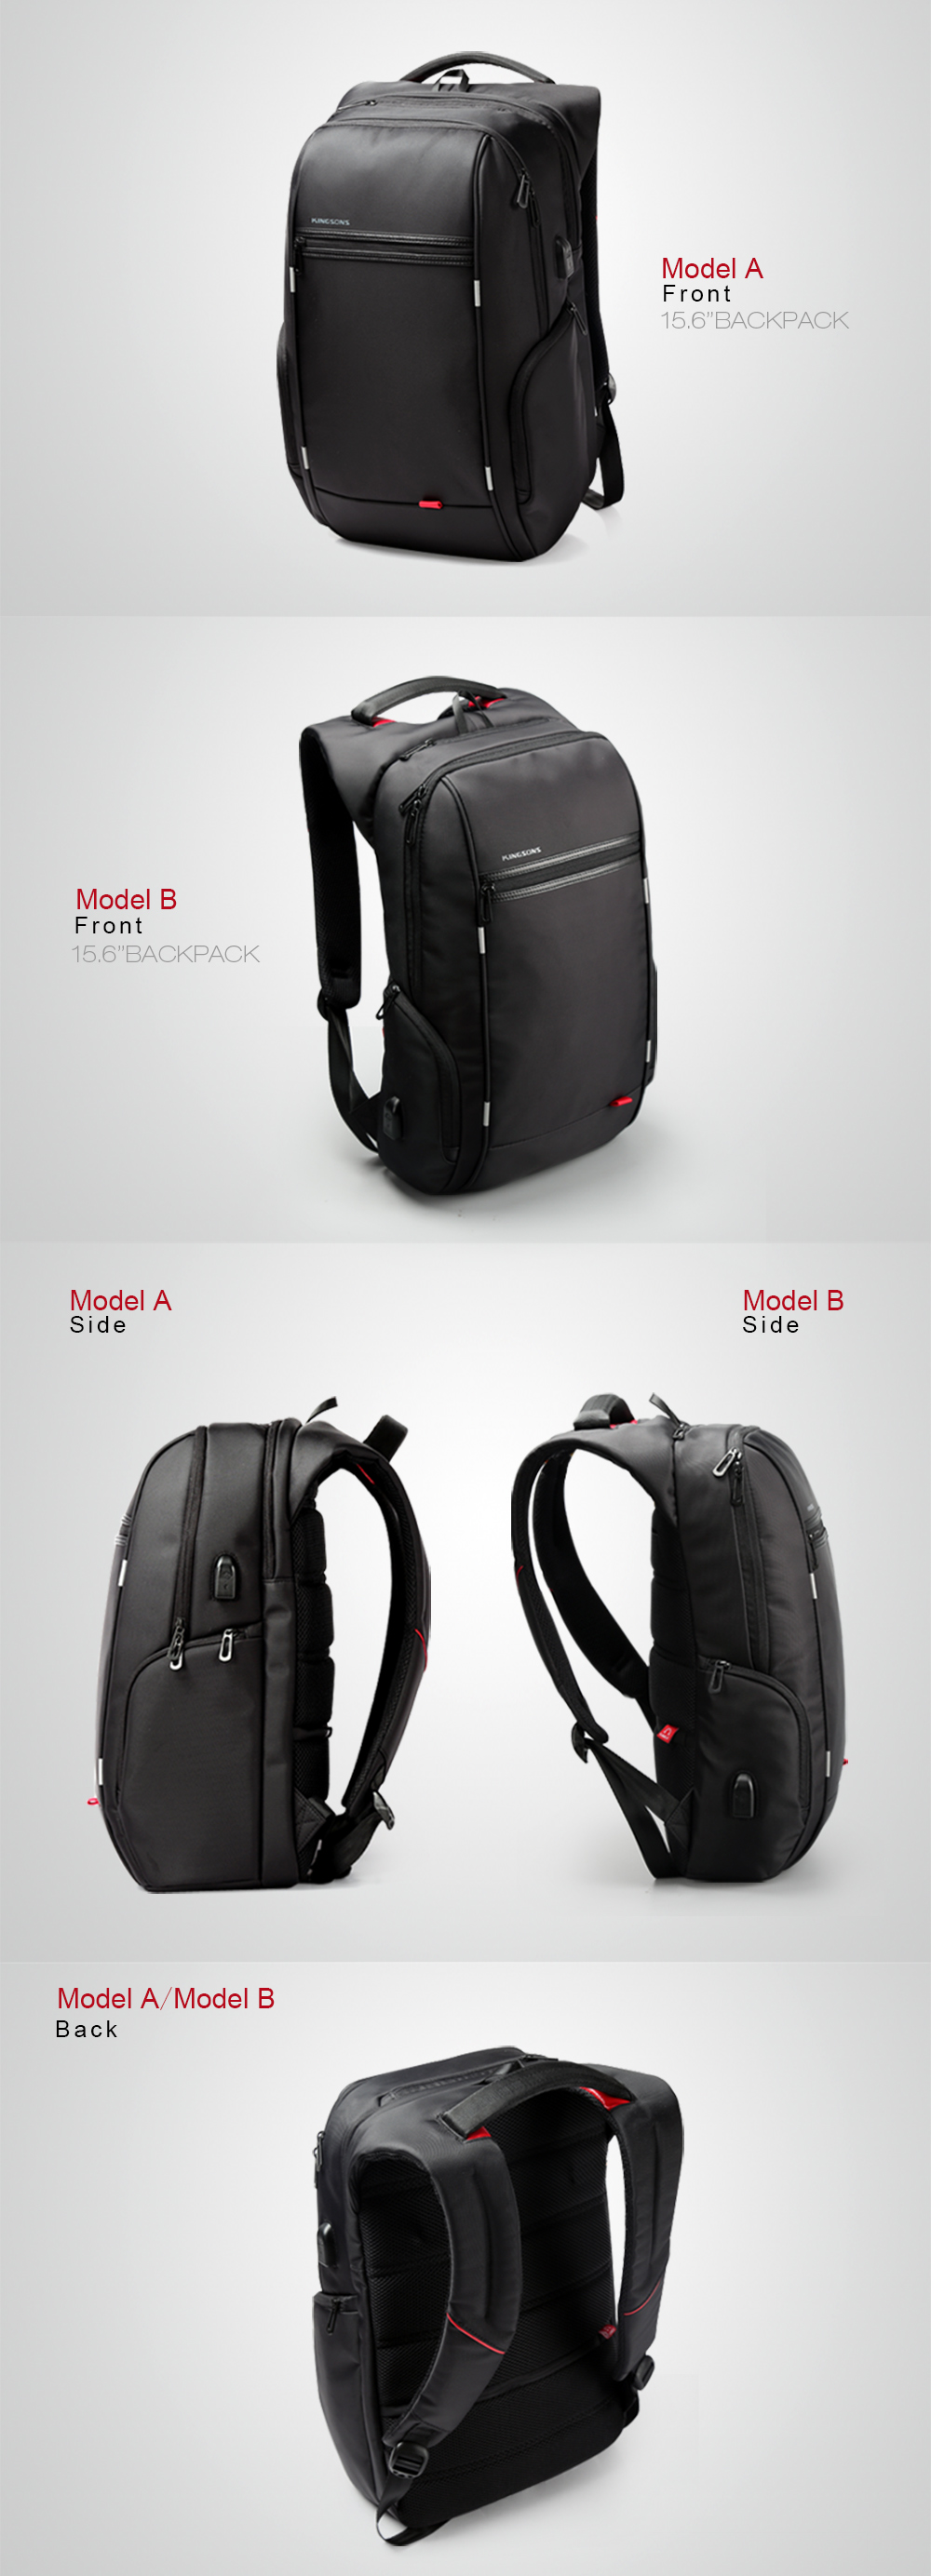 15 17 Laptop Backpack External Anti Theft Notebook Computer Bags For Men Women Bagpack Black Model B 17 Inches